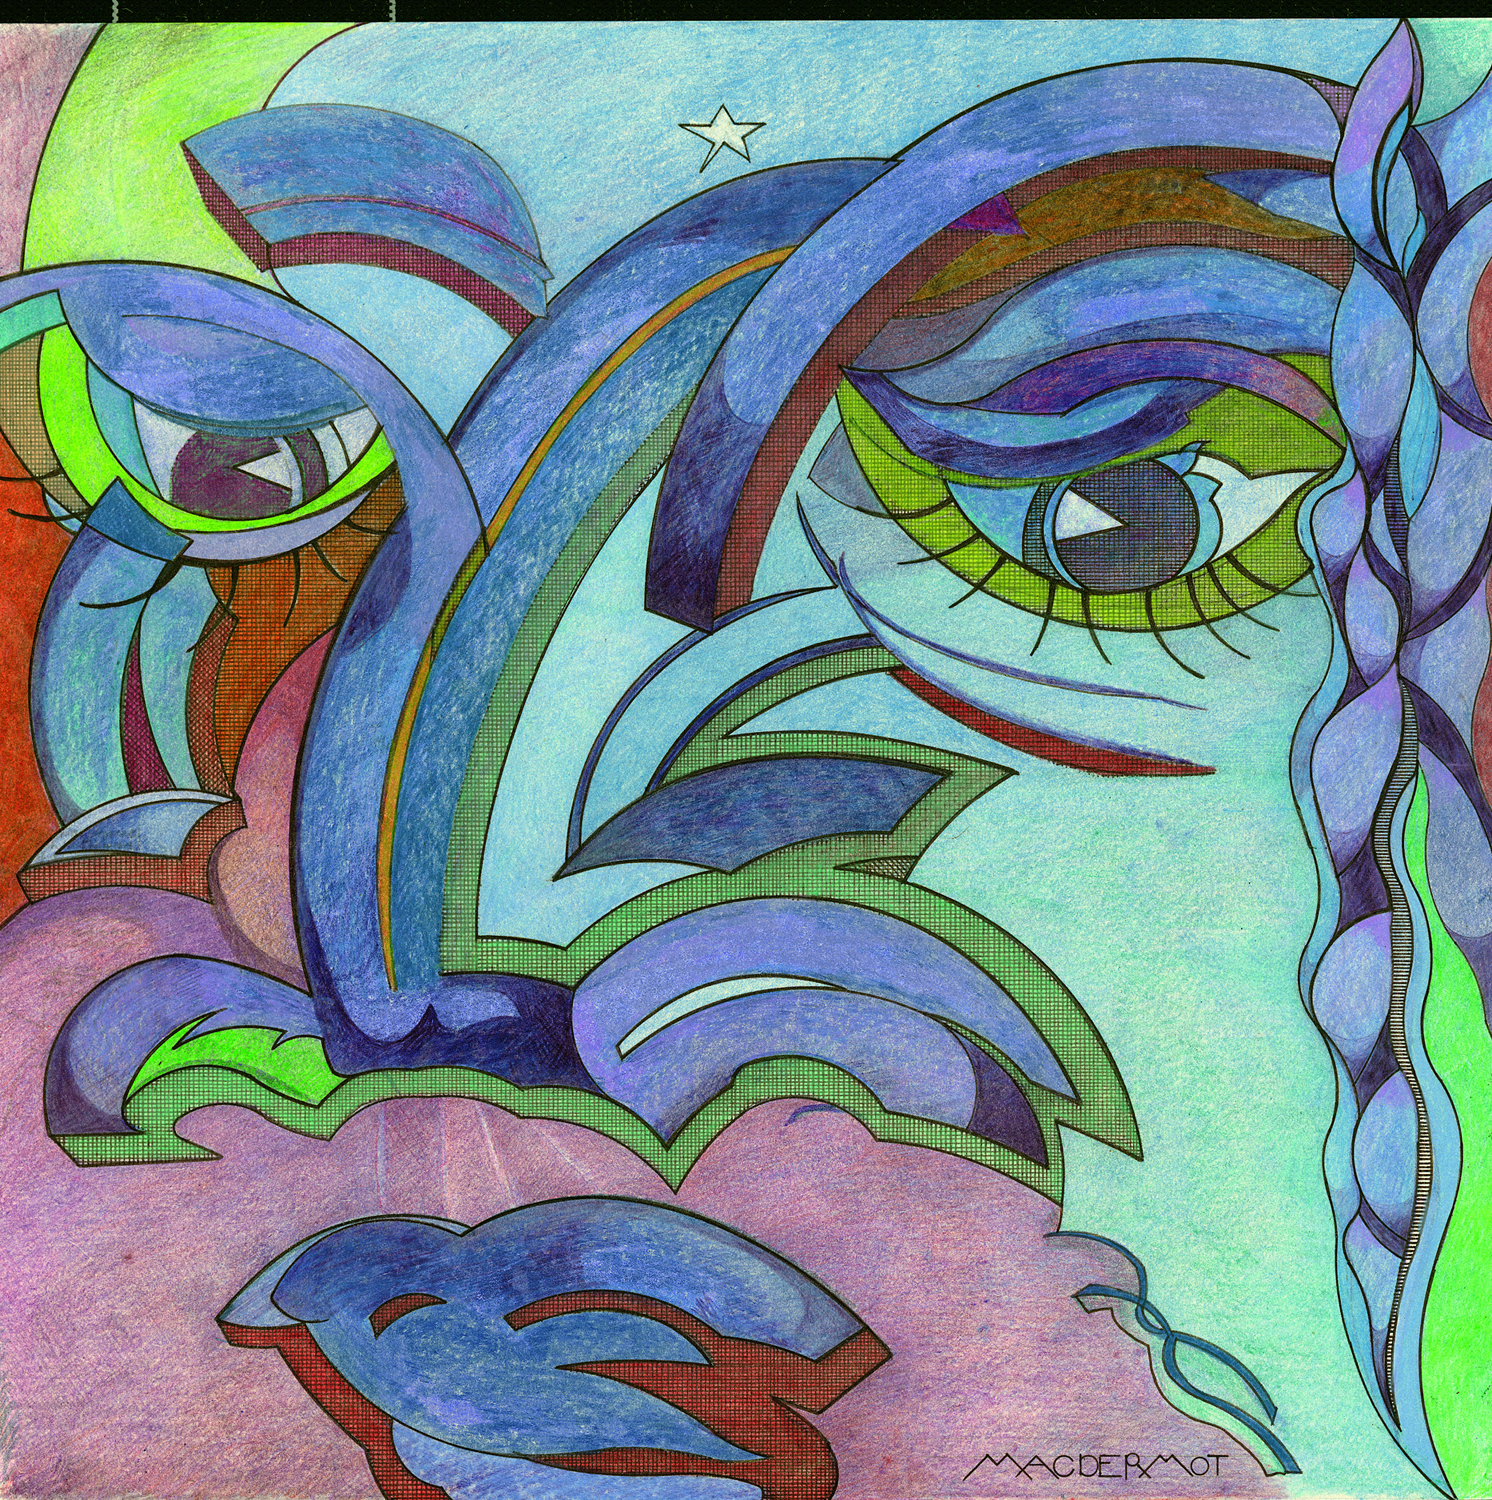 "INTENSITY series - WATCHING pen and ink, pastel and colored pencil on strathmore paper 19"" x 19"""